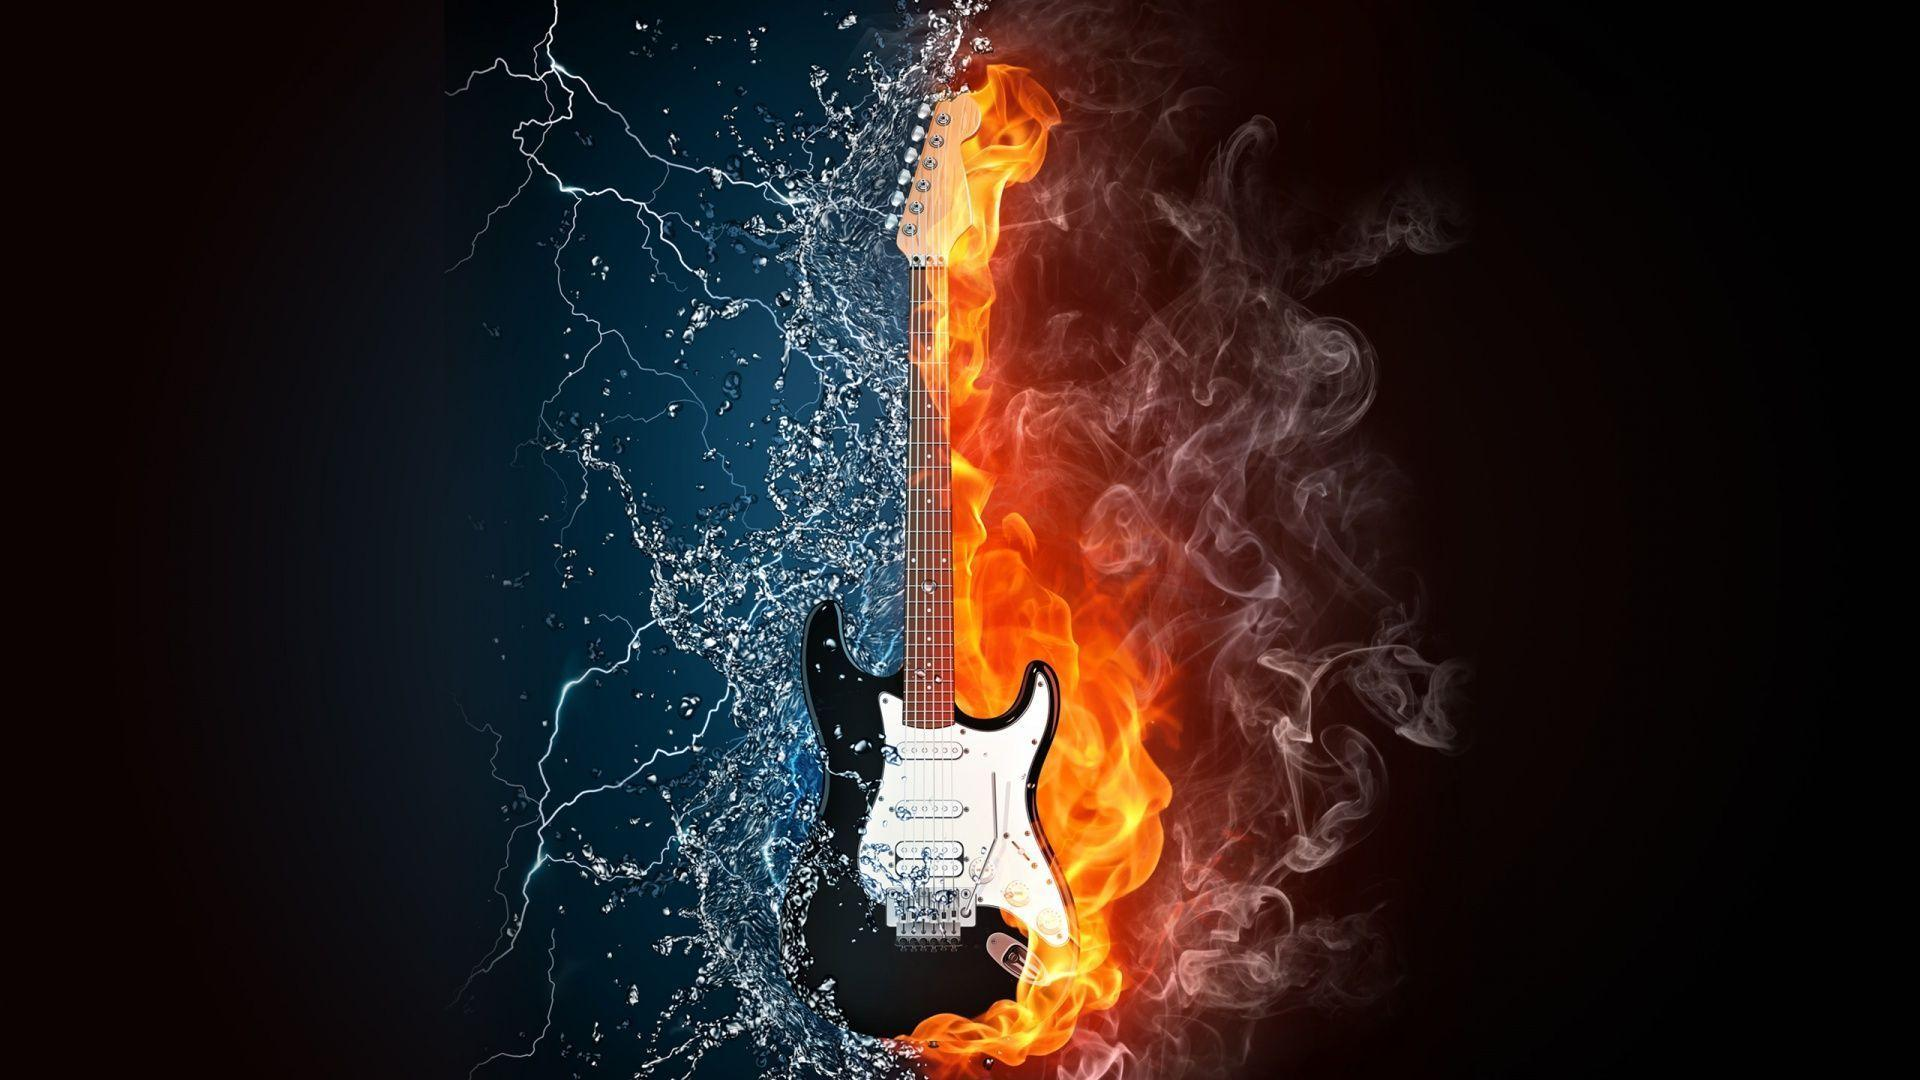 Wallpapers For > Blue Flaming Guitar Wallpaper